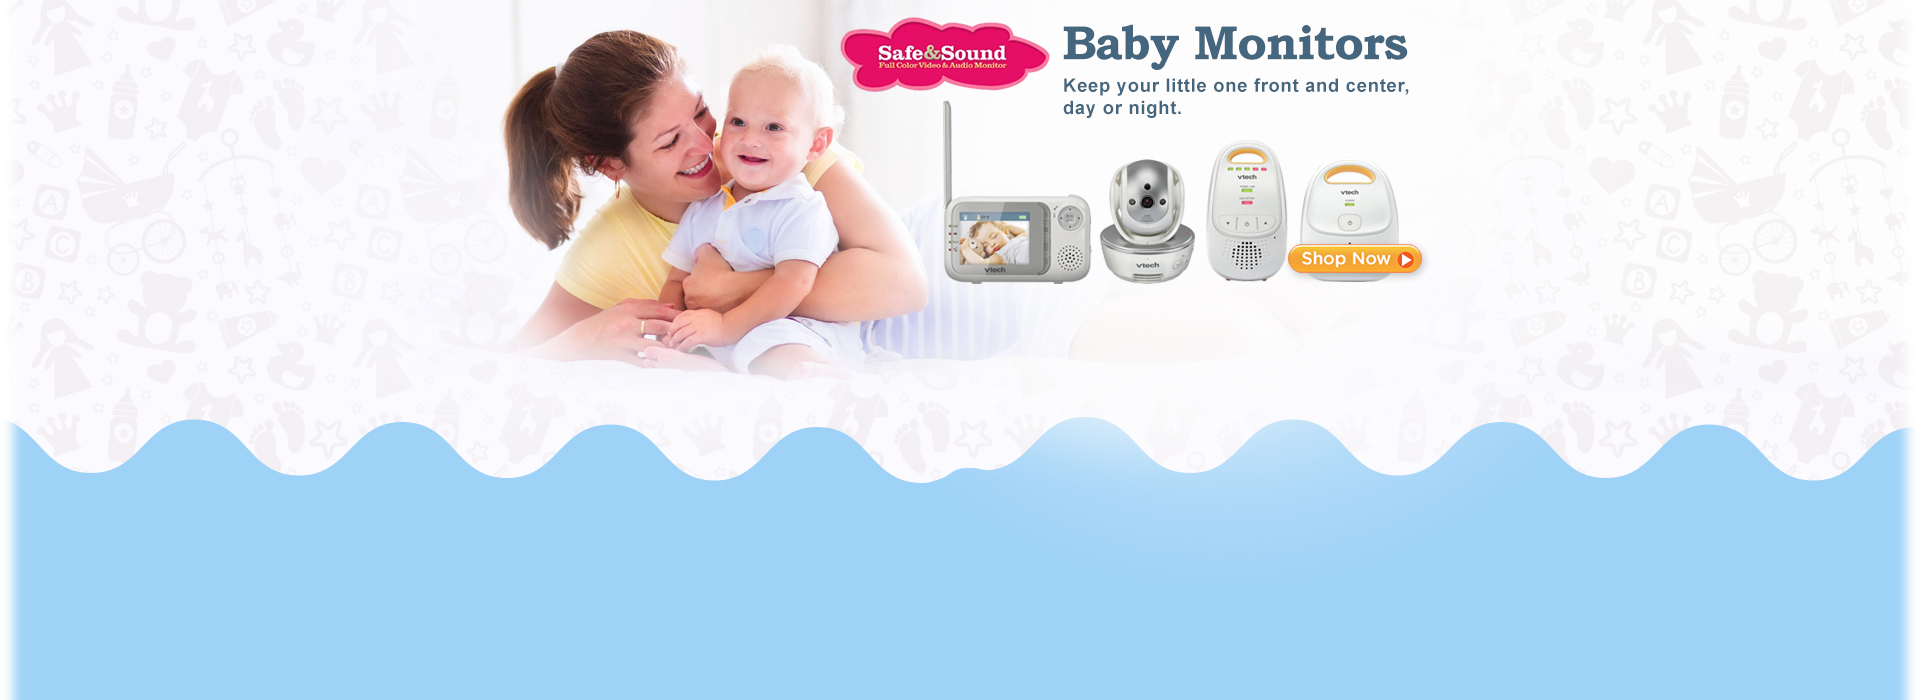 Baby Monitor - Keep your little one front and center, day or night